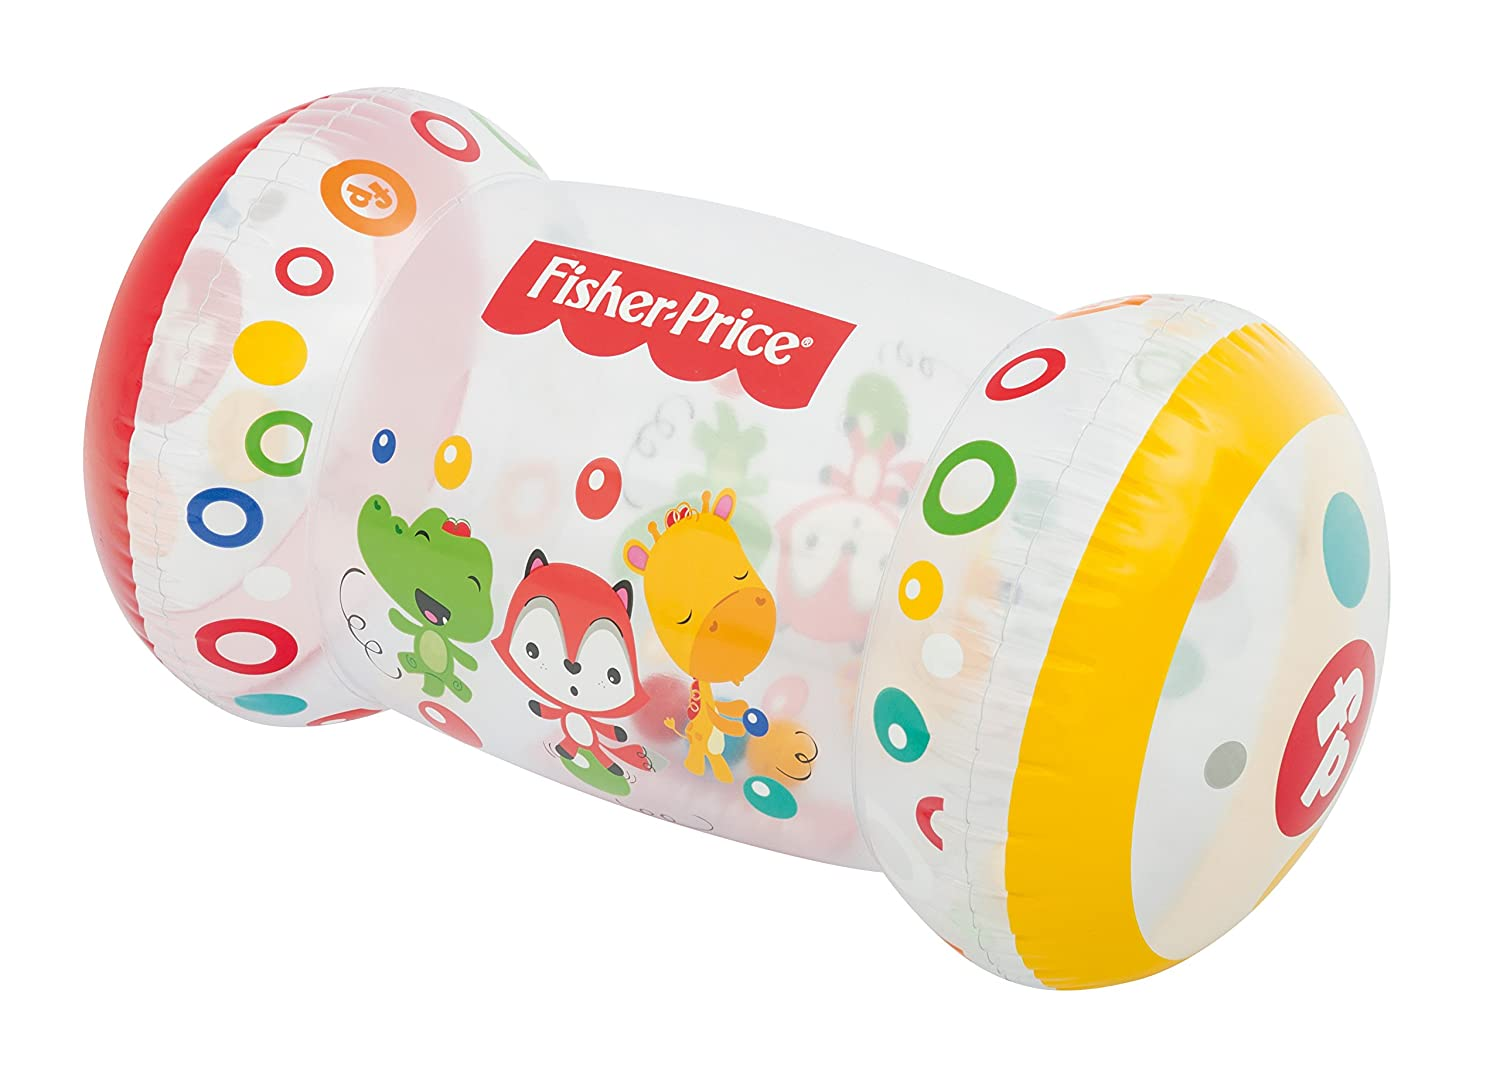 Amazon.com: Fisher-Price Bestway - Rodillo hinchable para ...